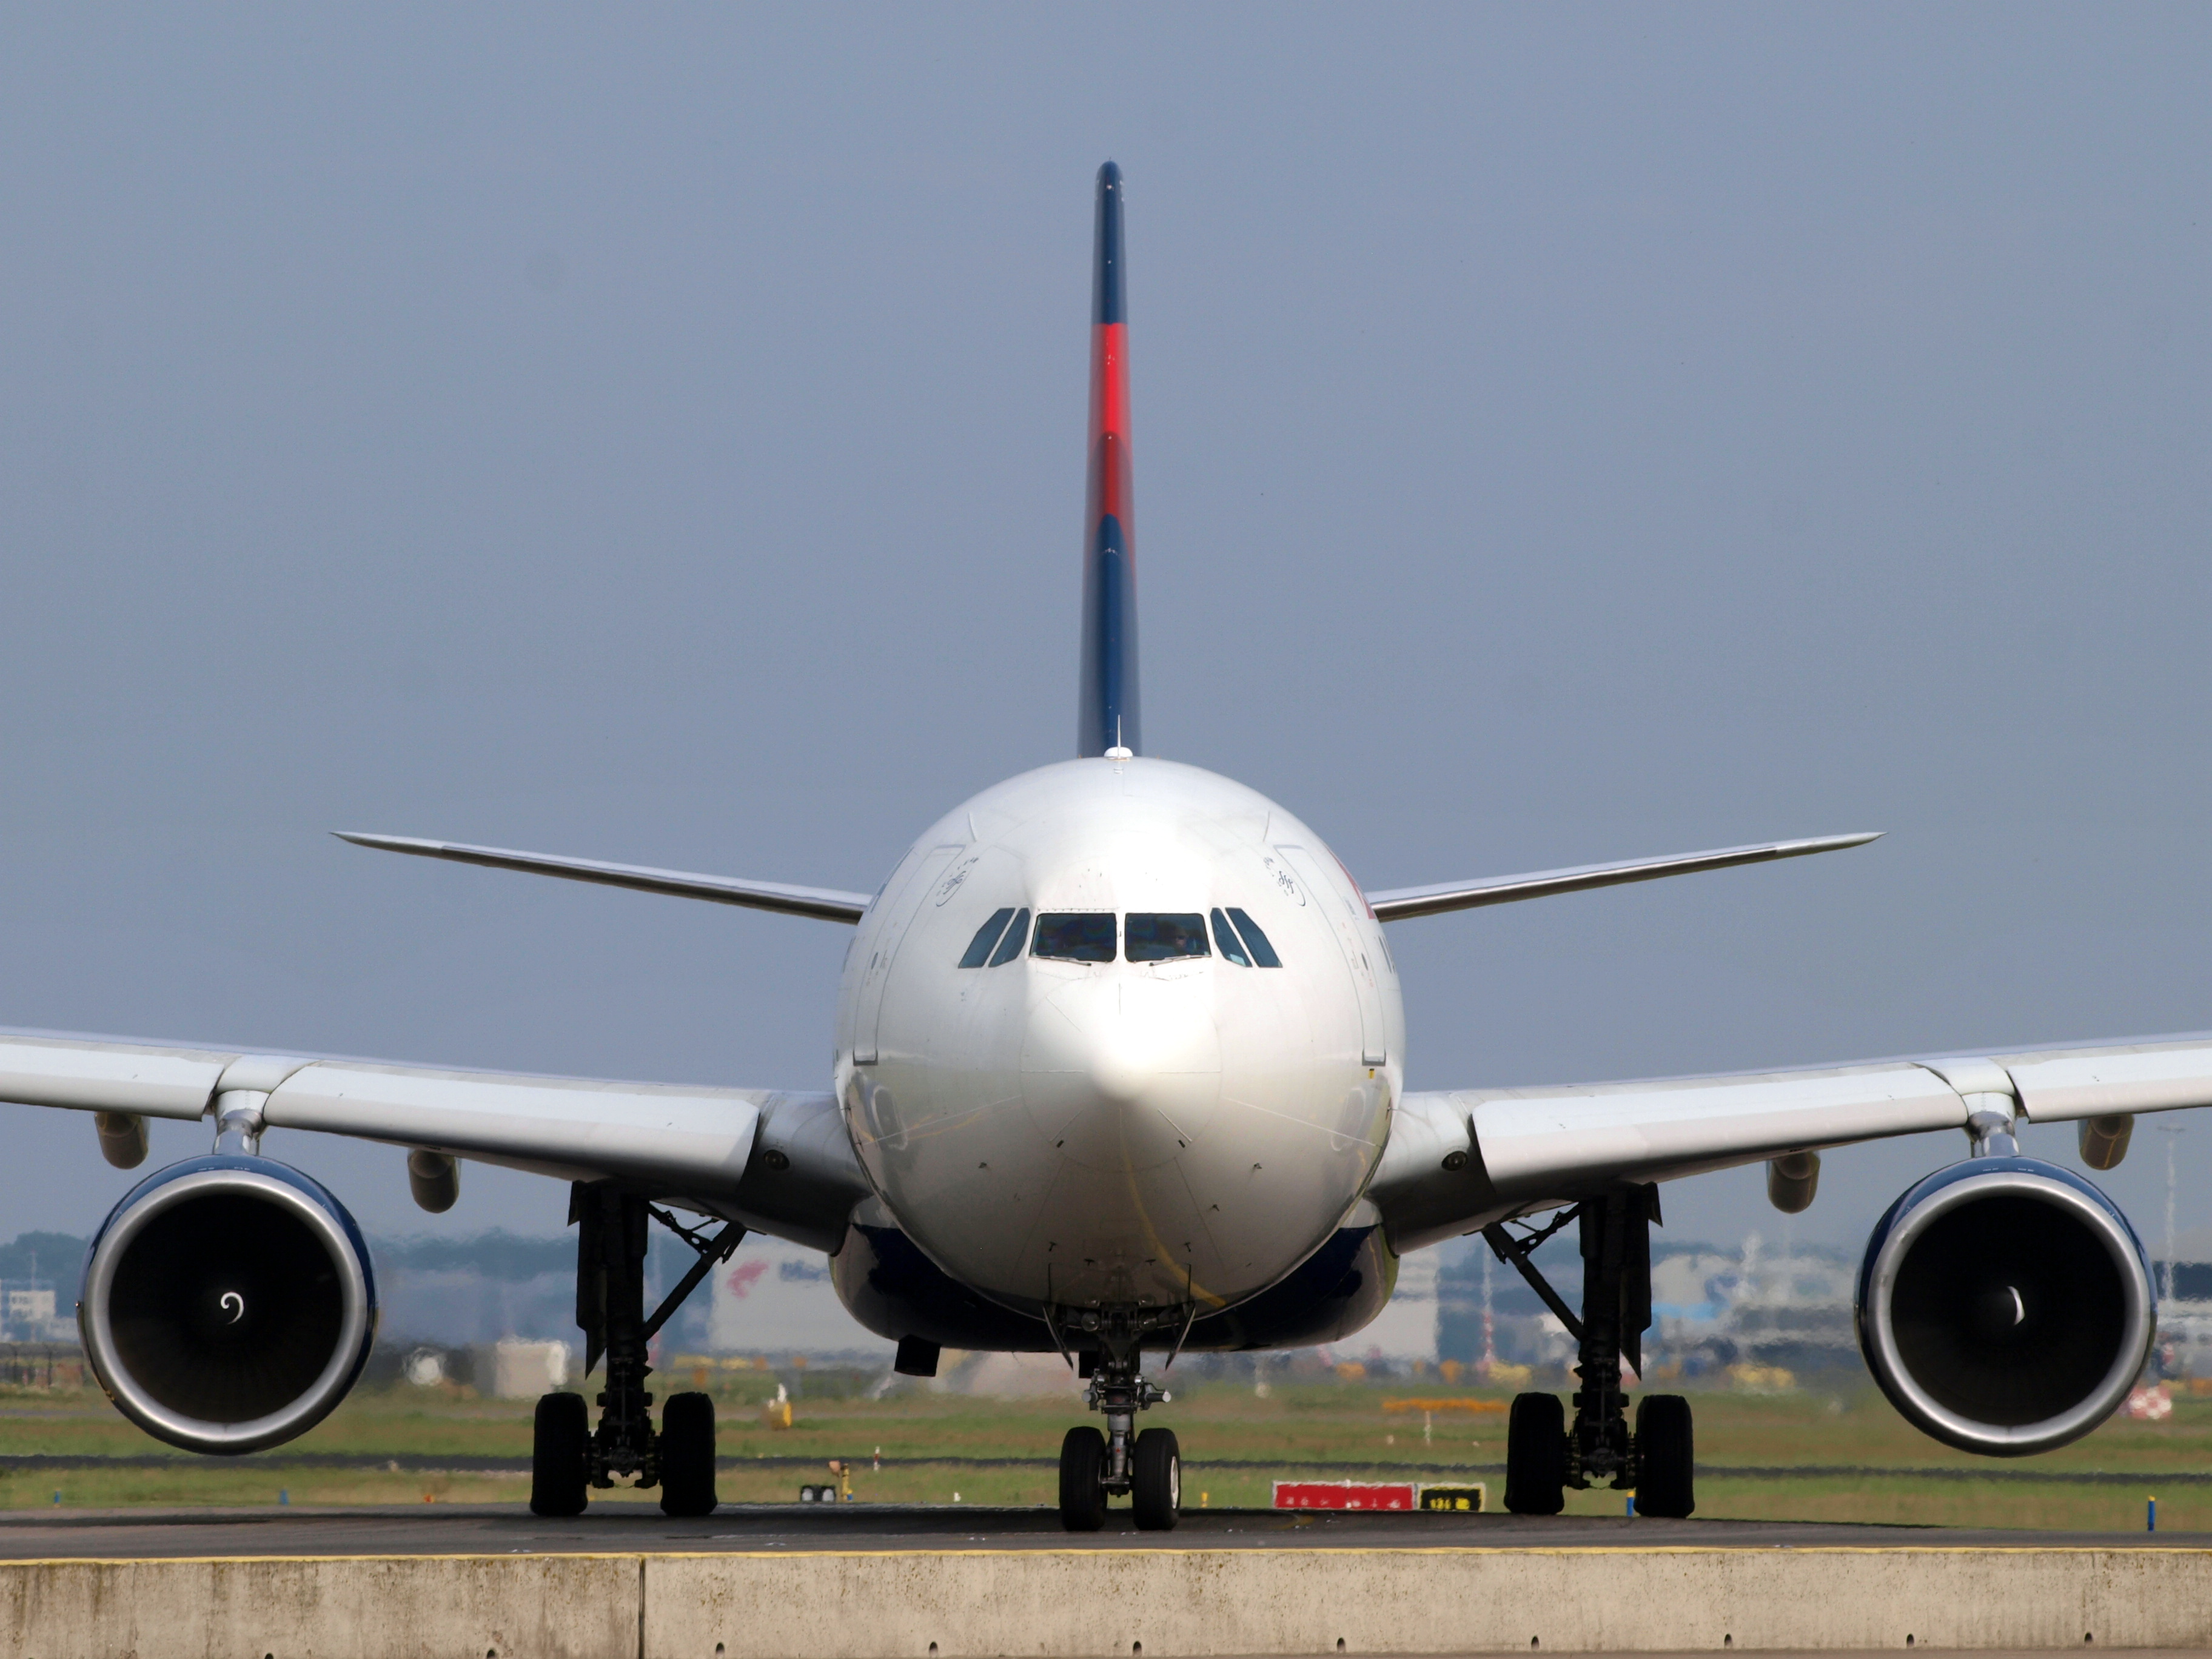 Airbus Iphone Wallpaper File N812nw Delta Air Lines Airbus A330 323x Cn 784